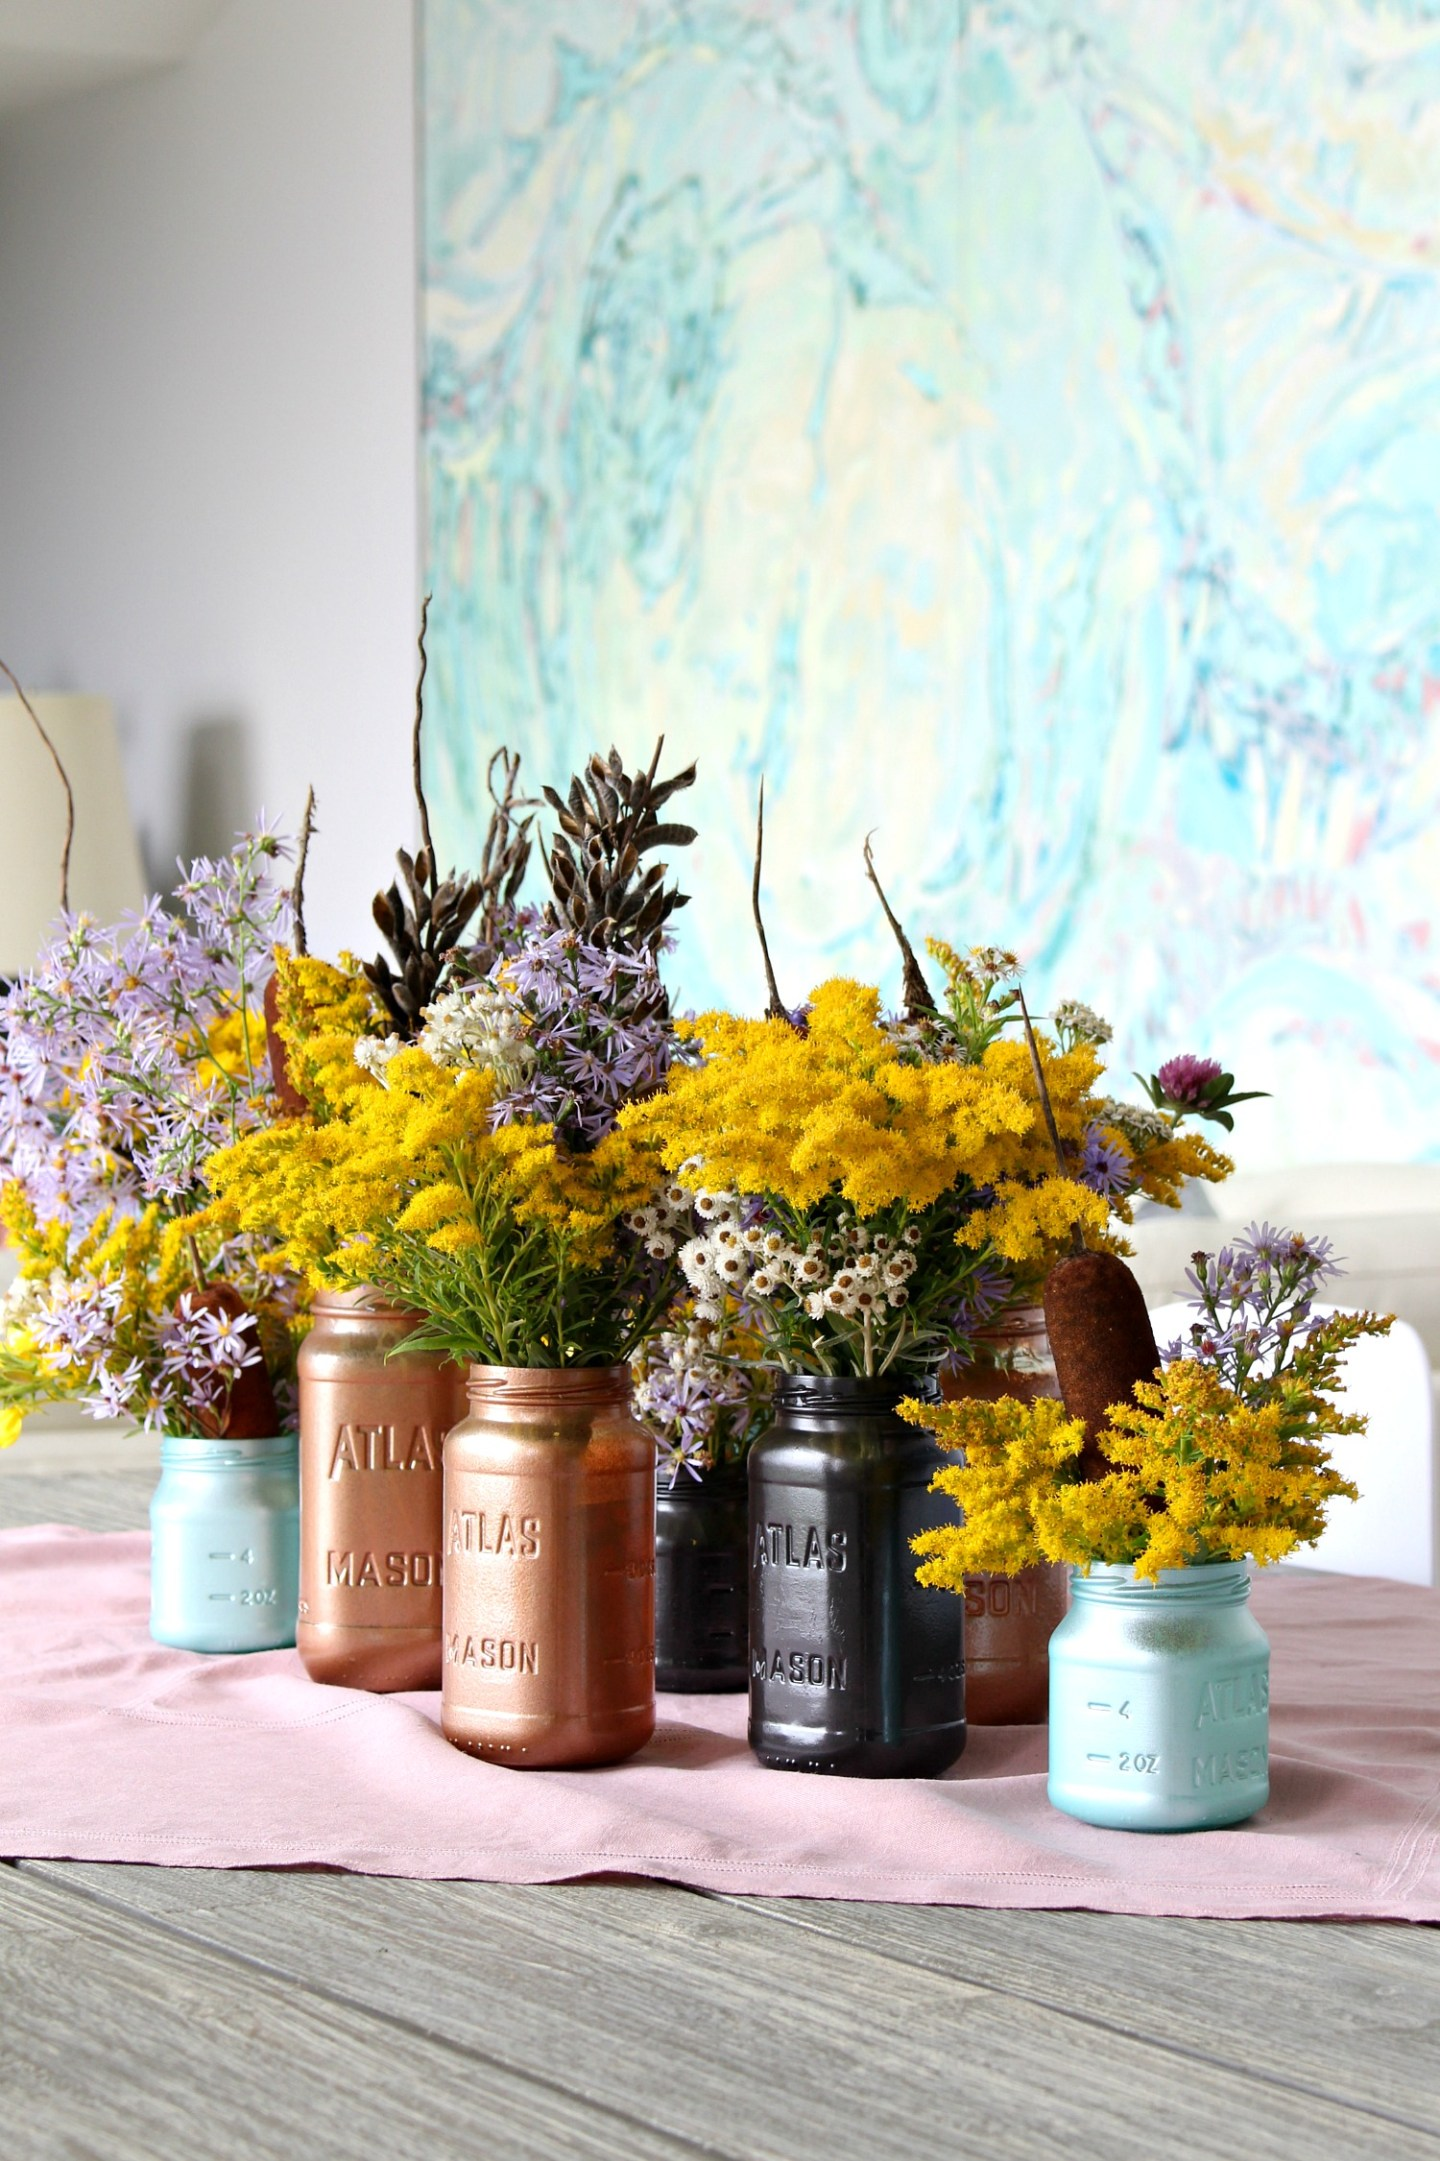 Upcycled Jars as Vases